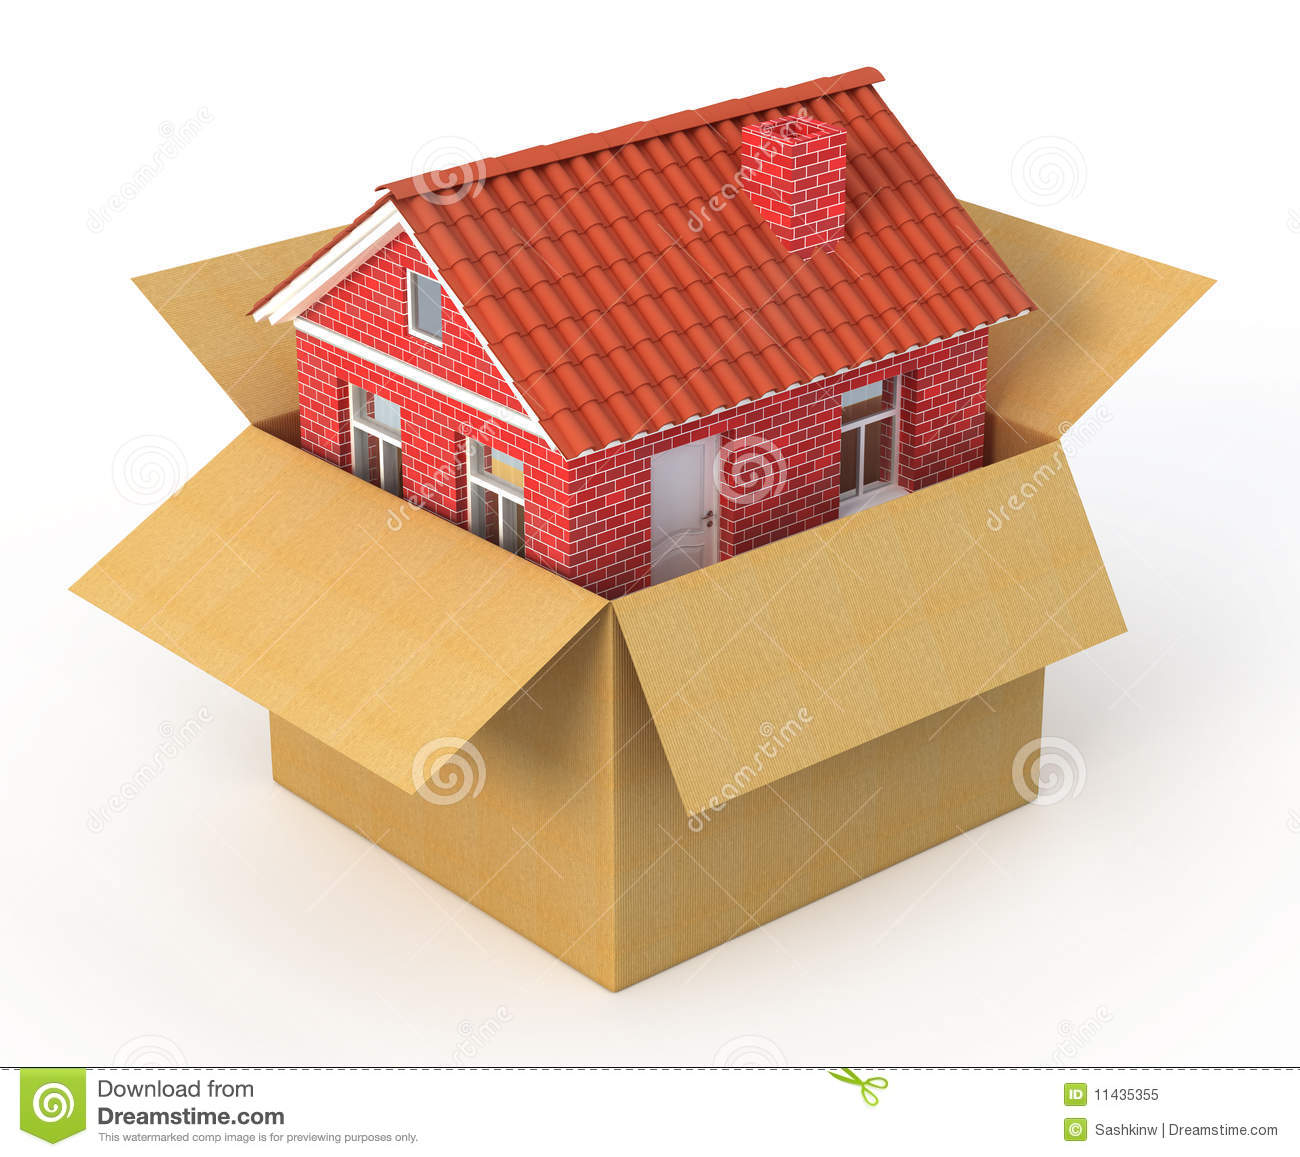 New house in the cardboard box royalty free stock photo for House in a box